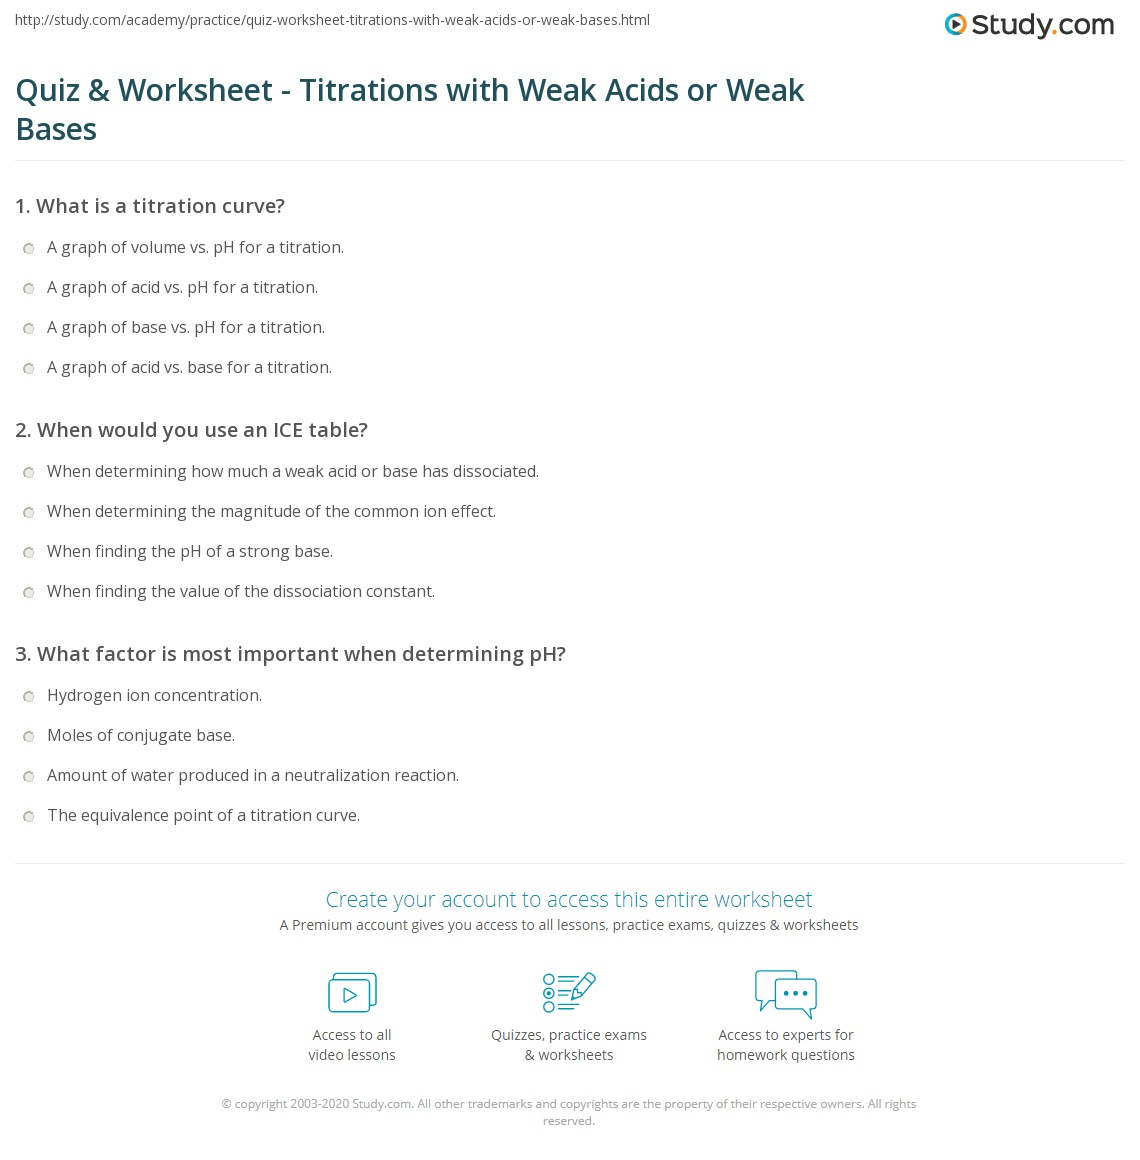 Weak Acids And Bases Worksheet Answers: Quiz & Worksheet   Titrations with Weak Acids or Weak Bases    ,